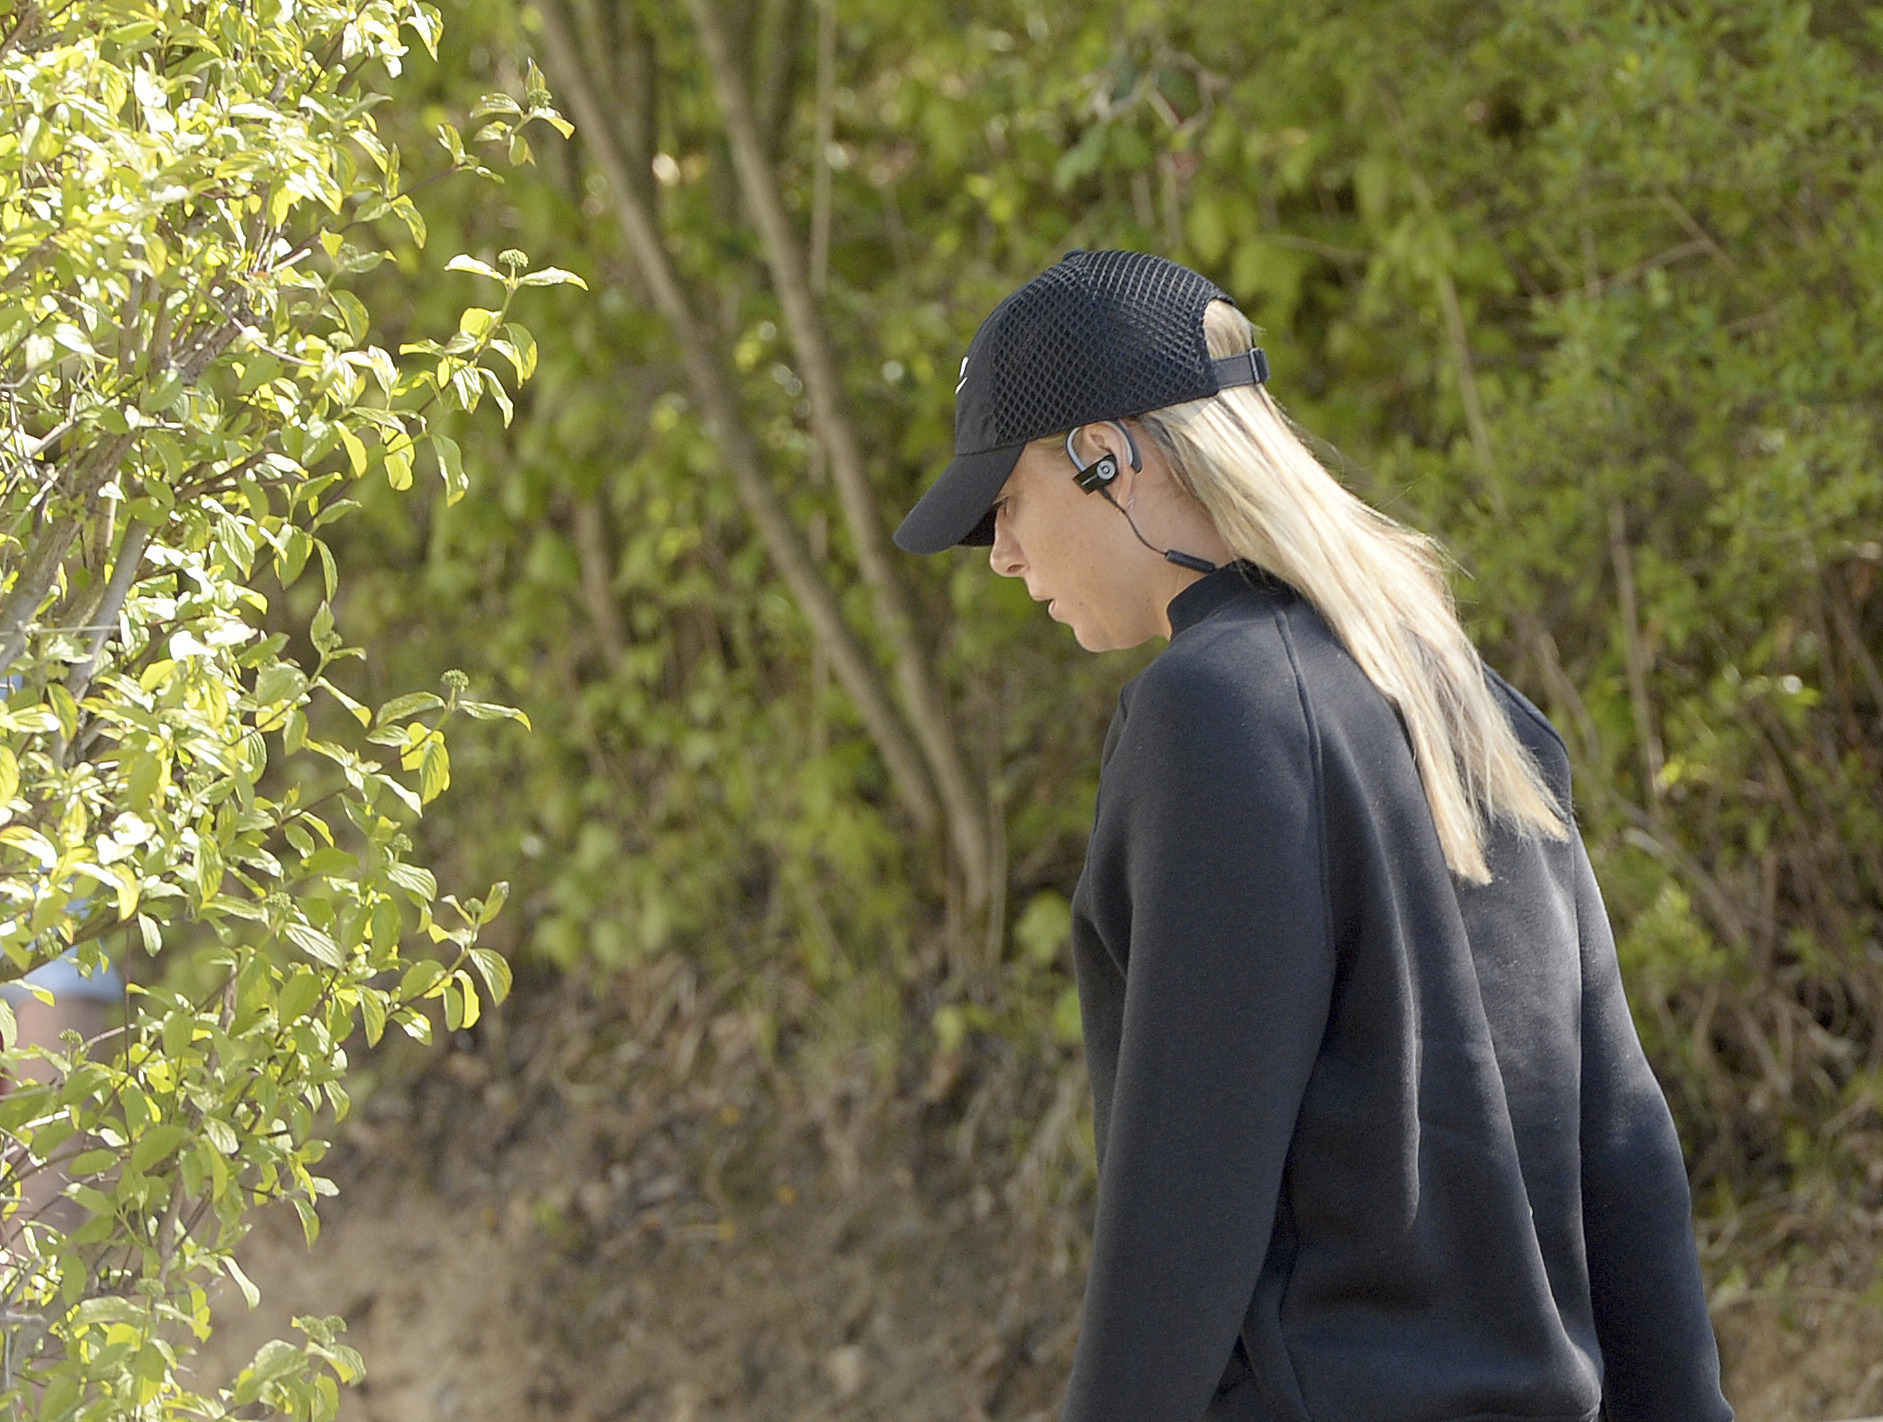 Russian tennis player Maria Sharapova is on her way to a training session after the end of her 15-month doping suspension in Stuttgart, Germany, Monday, April 24, 2017. (Bernd Weissbrod/dpa via AP)